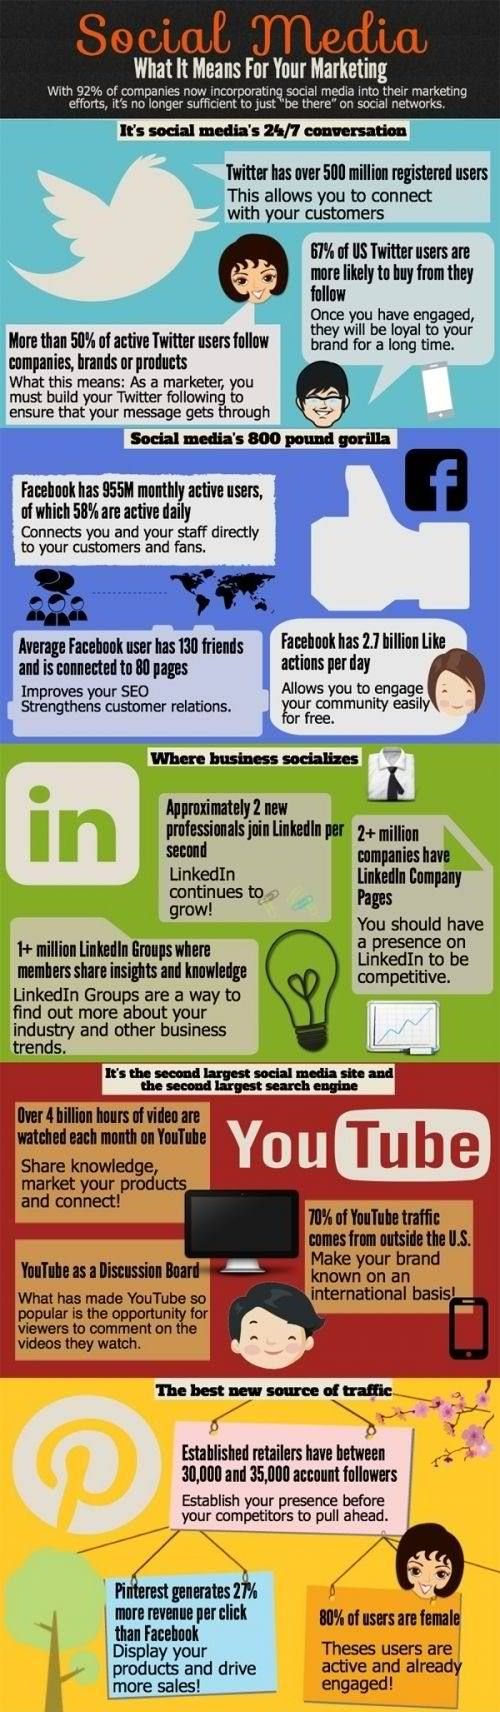 Social Media - What It Means For Your Marketing #infographic